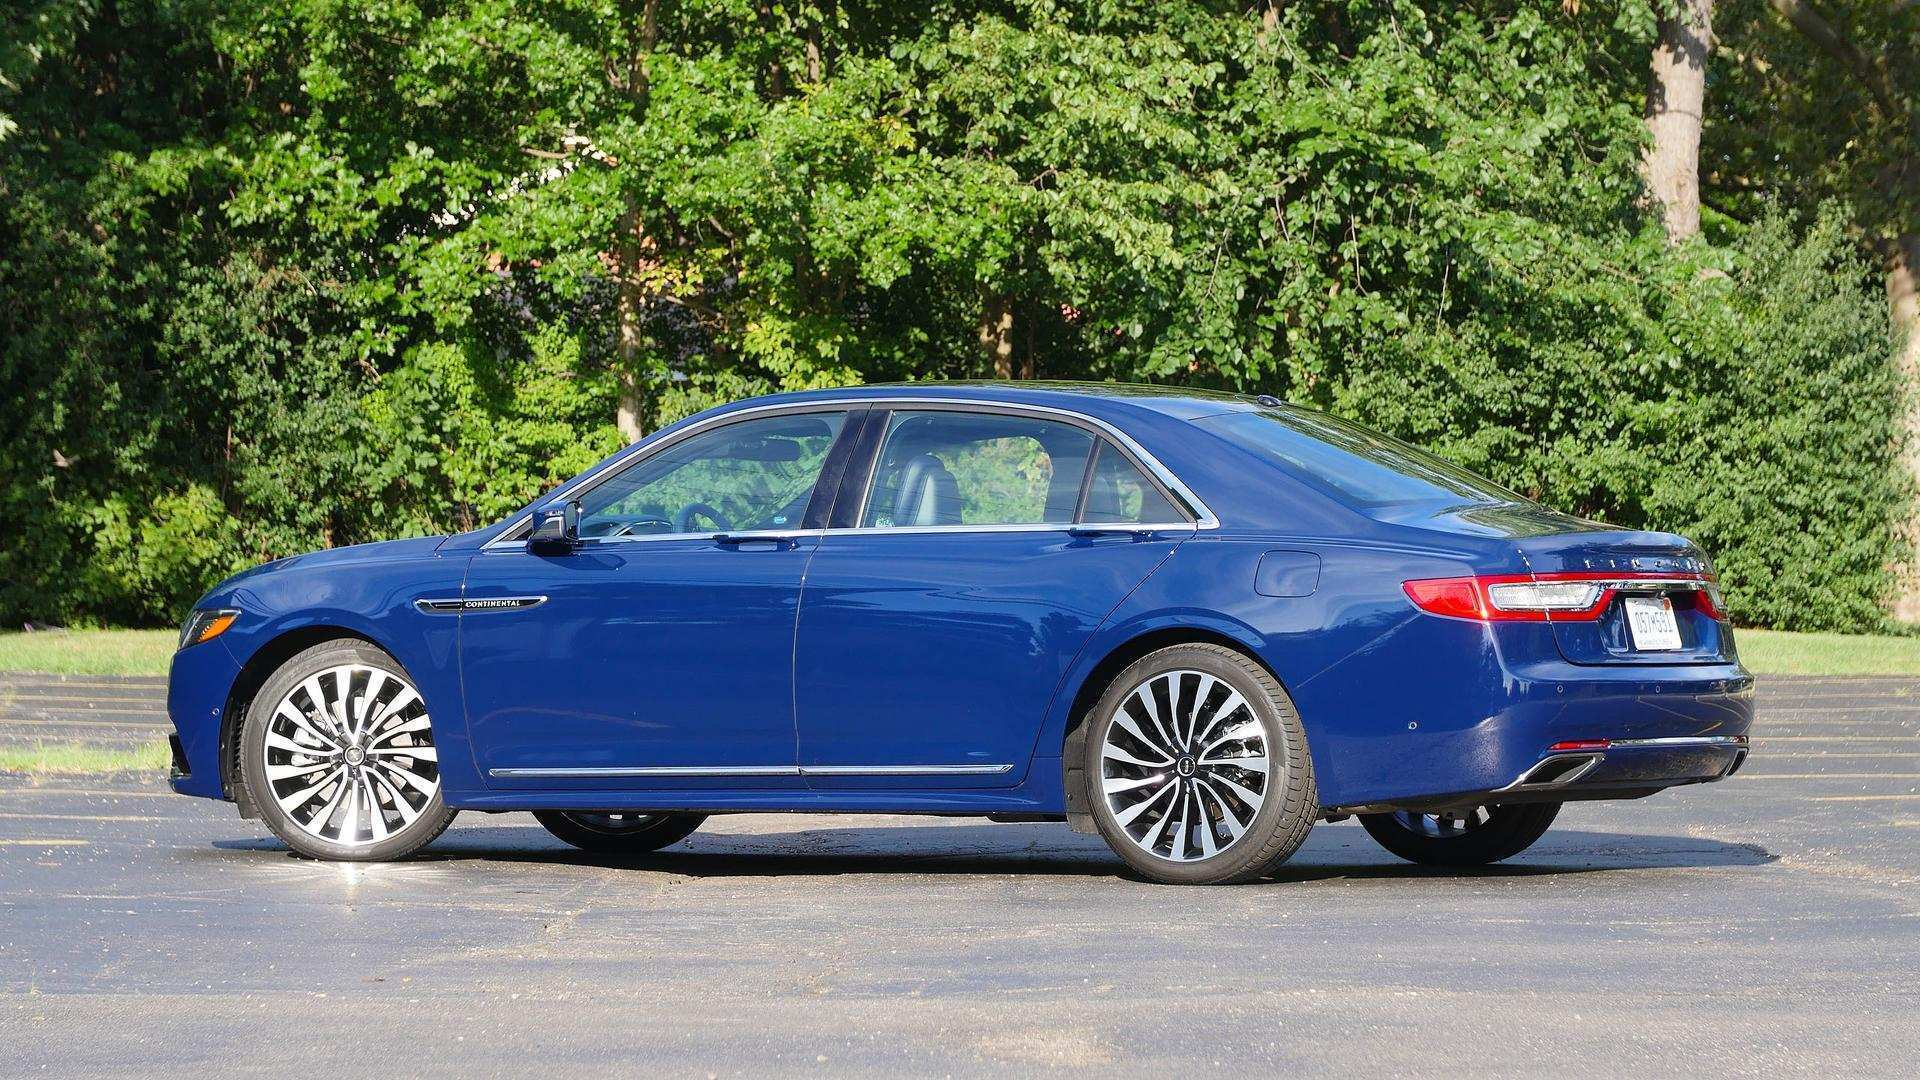 64 Concept of 2020 The Lincoln Continental Release Date by 2020 The Lincoln Continental